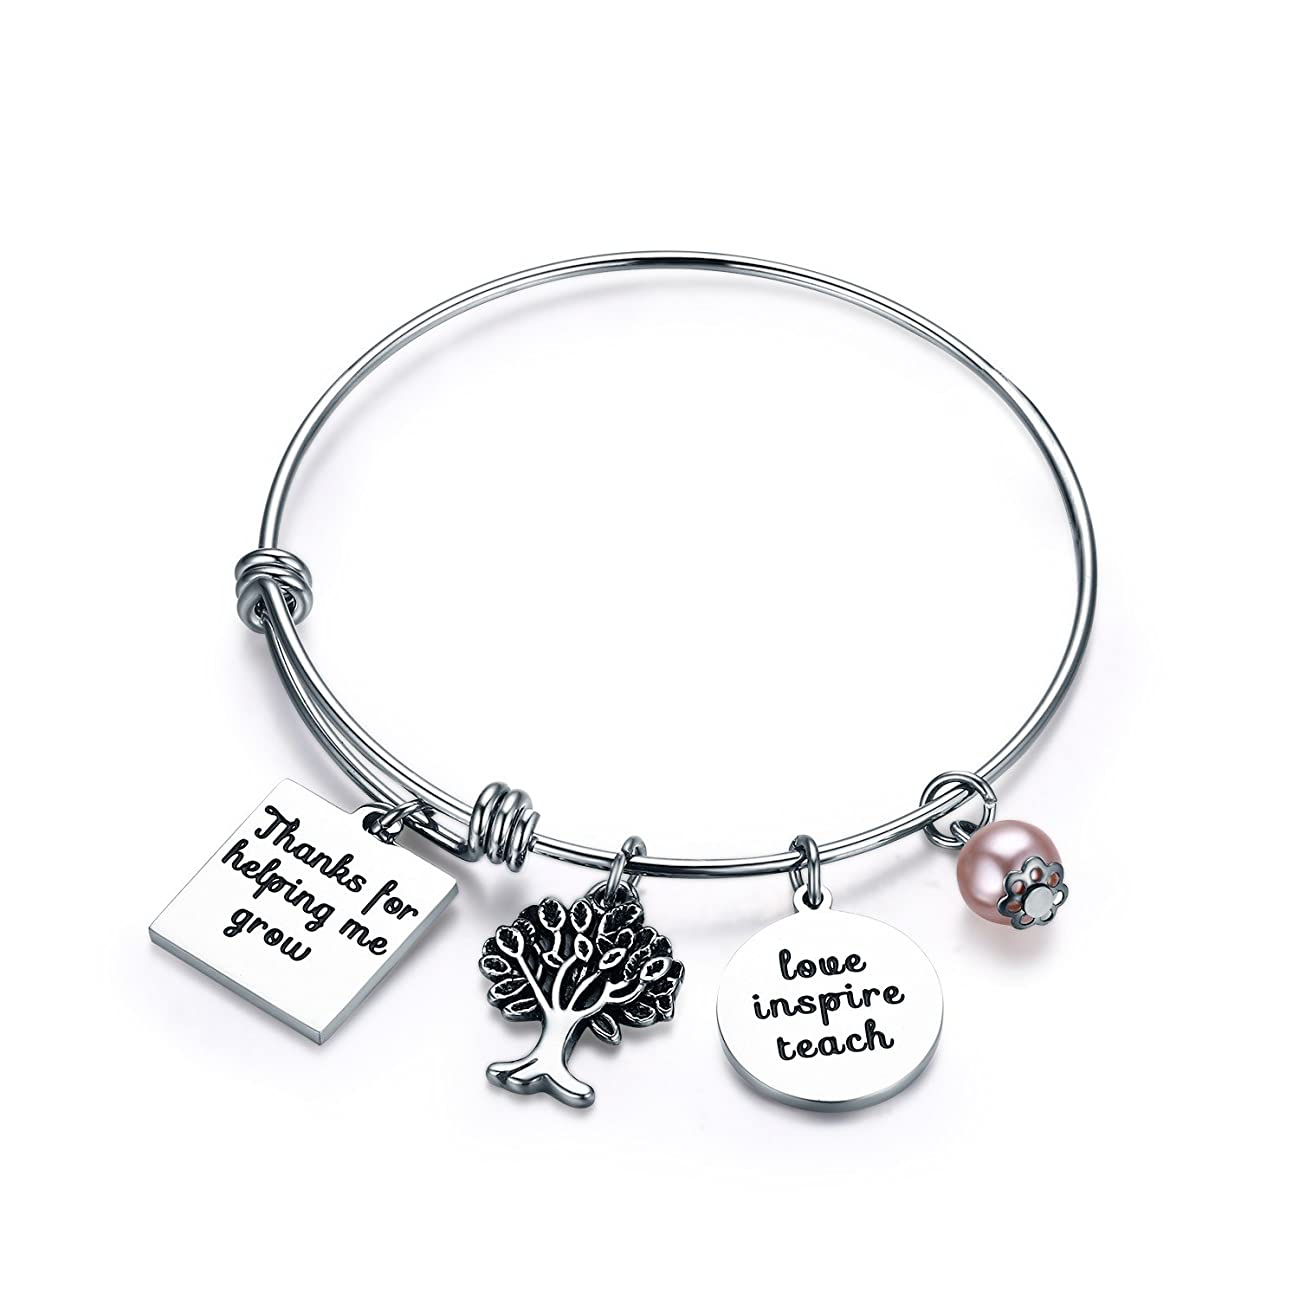 Udobuy Teacher Bangle Bracelet-Teacher Gift, Show Your Teacher Appreciation Thank You Gifts for Teachers